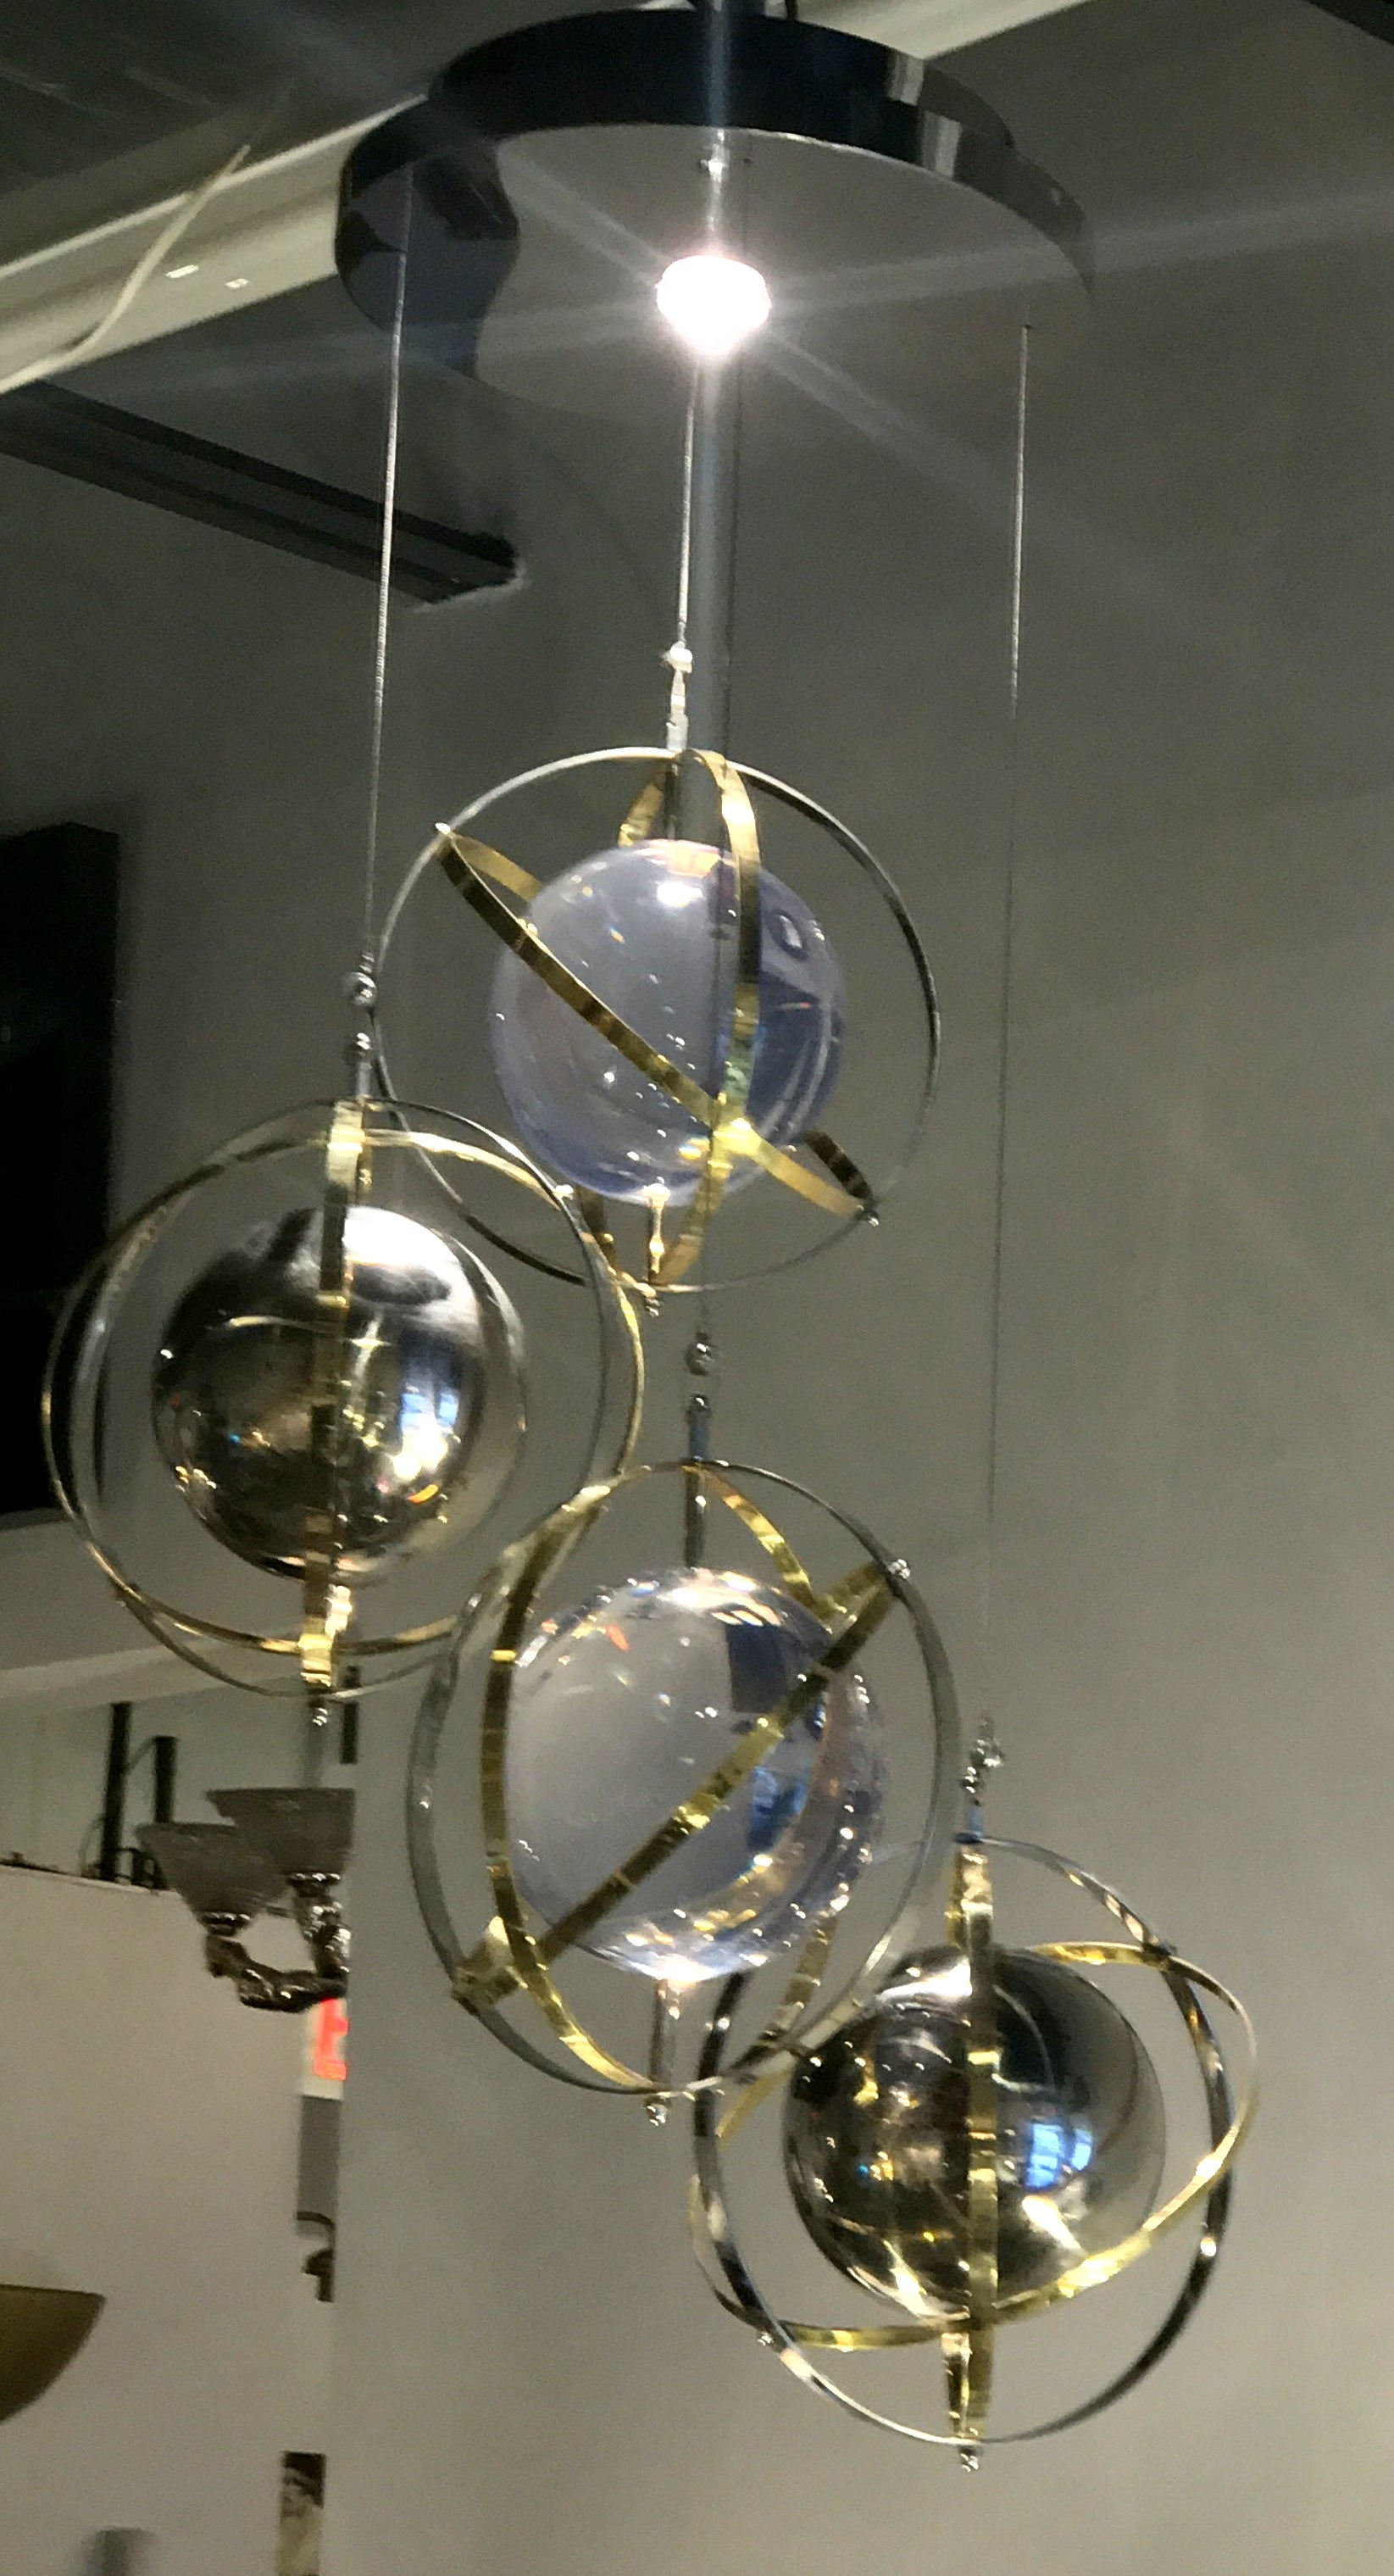 Pair of brass stainless steel and lucite armillary sphere pair of brass stainless steel and lucite armillary sphere chandeliers for sale at 1stdibs arubaitofo Image collections